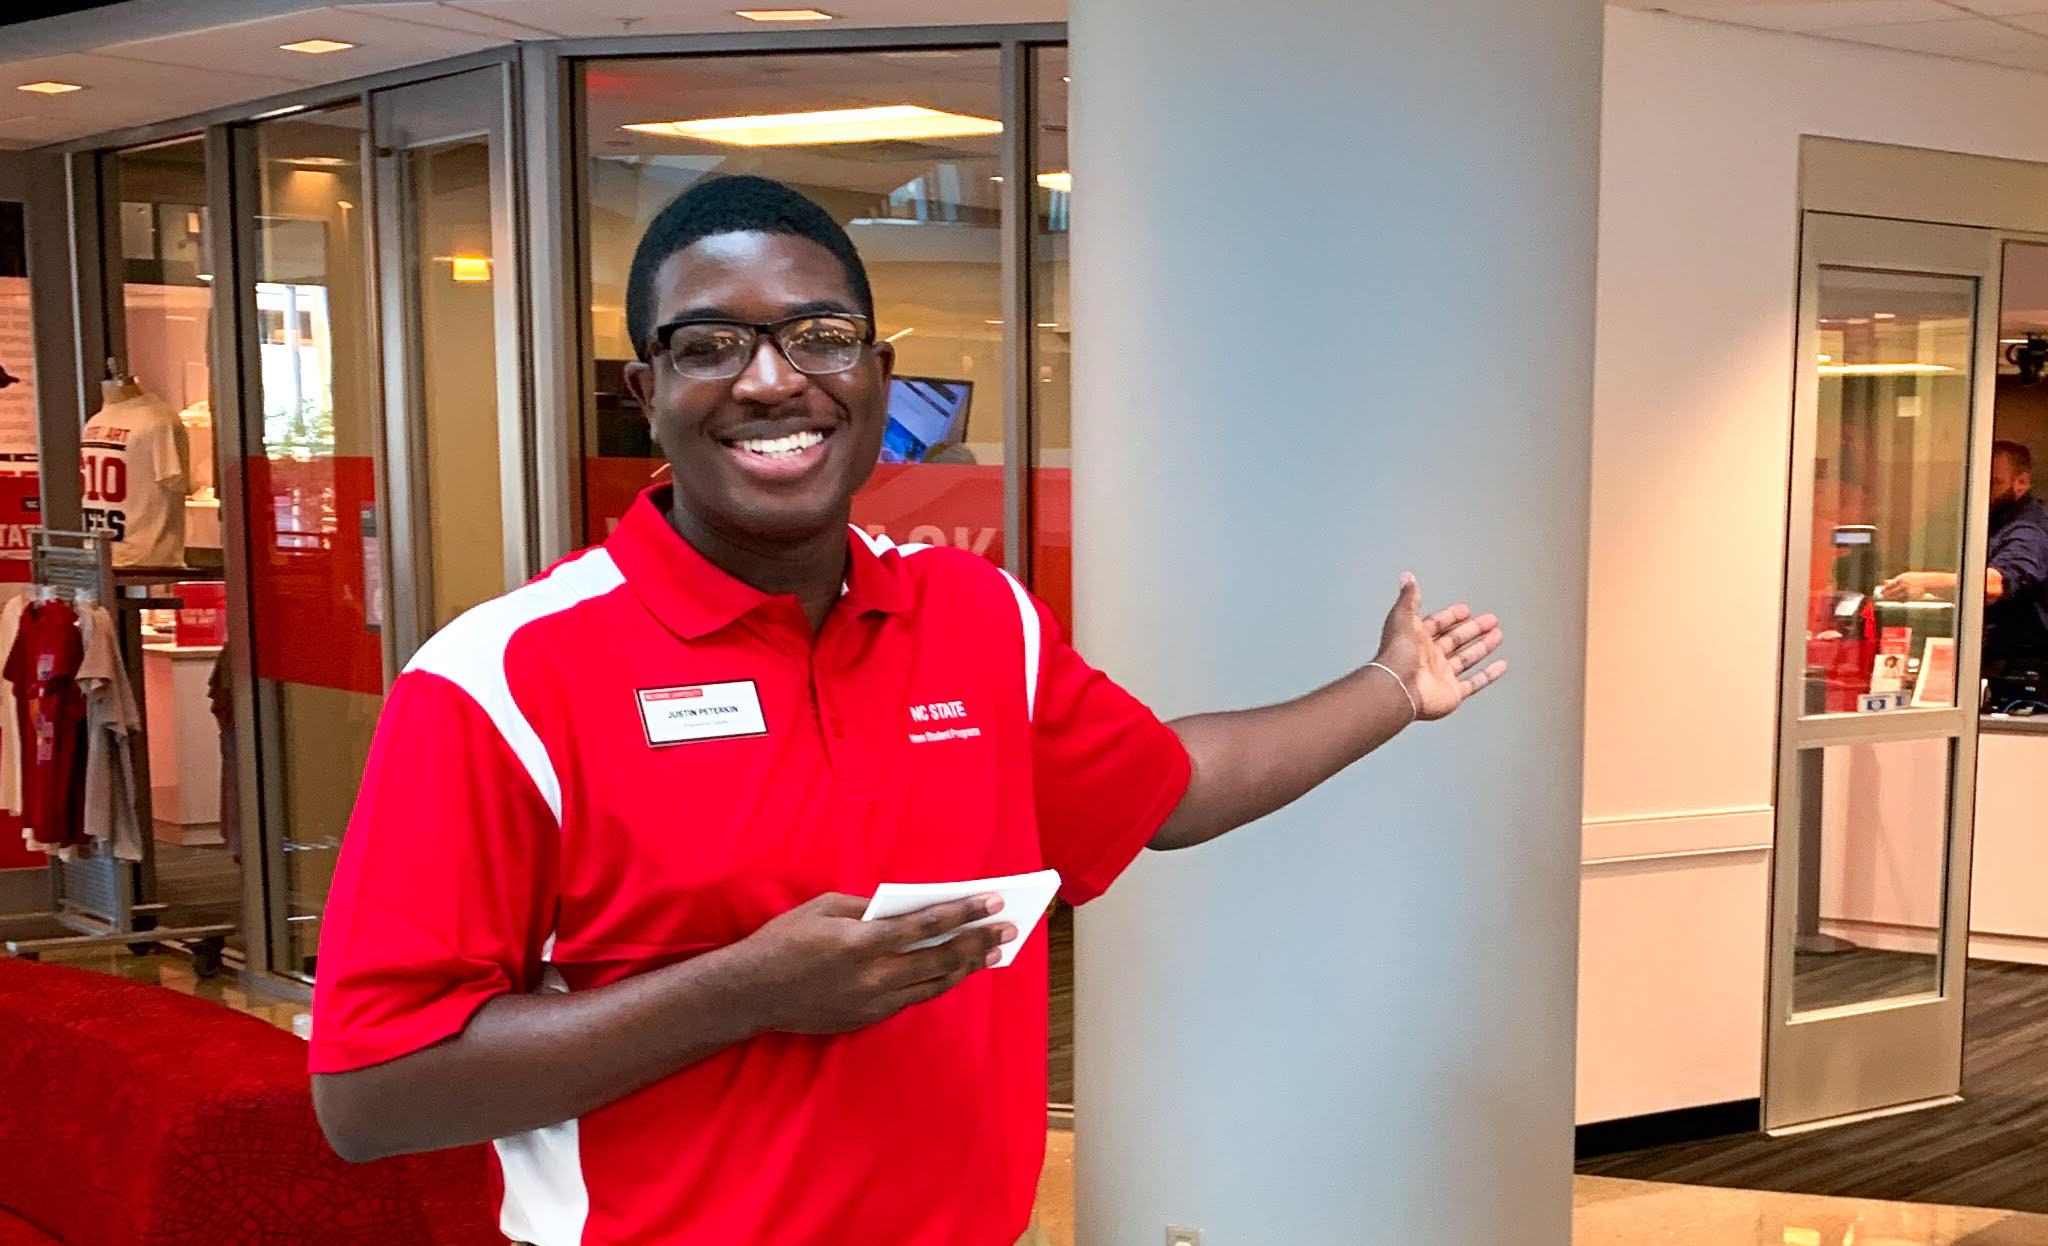 An Orientation Leader smiles and welcomes guests to orientation